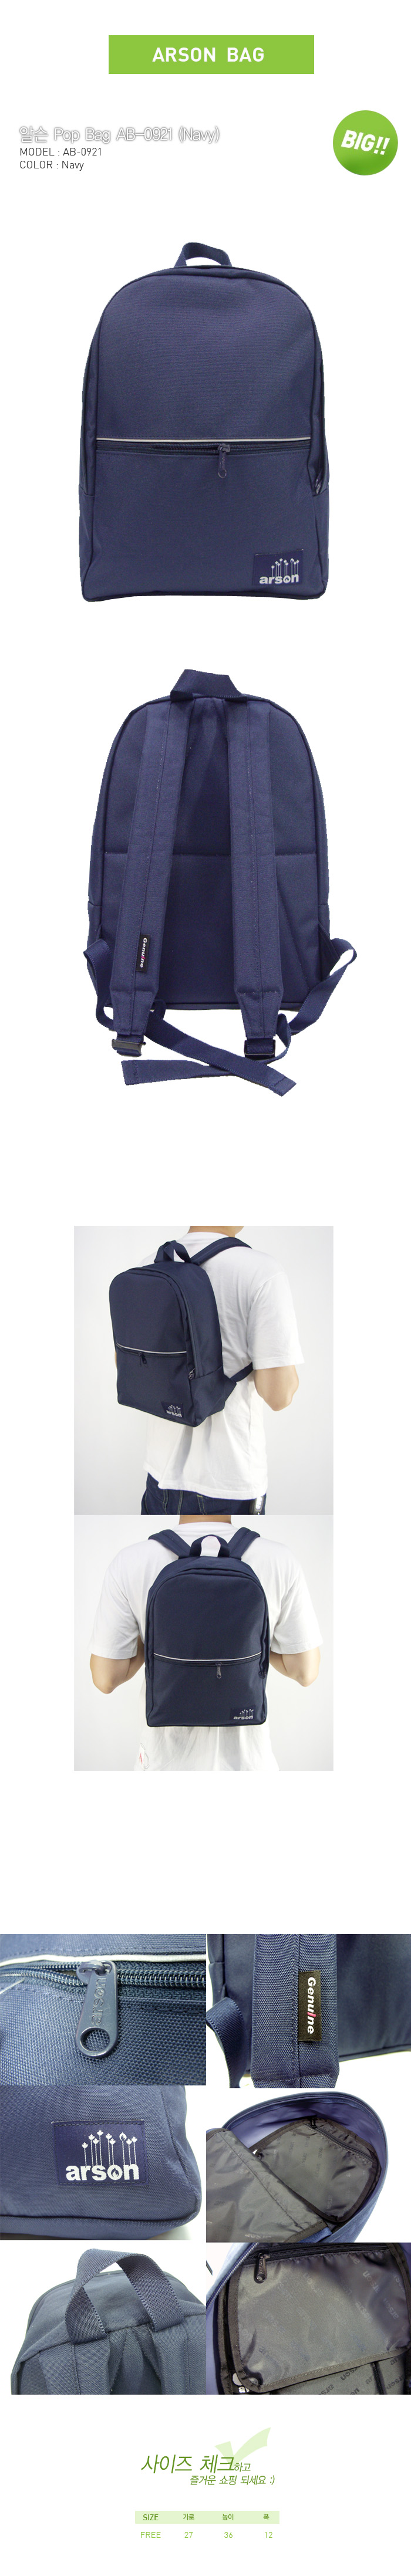 [ ARSON ] AB-0921 (Navy)/Backpack School Bag